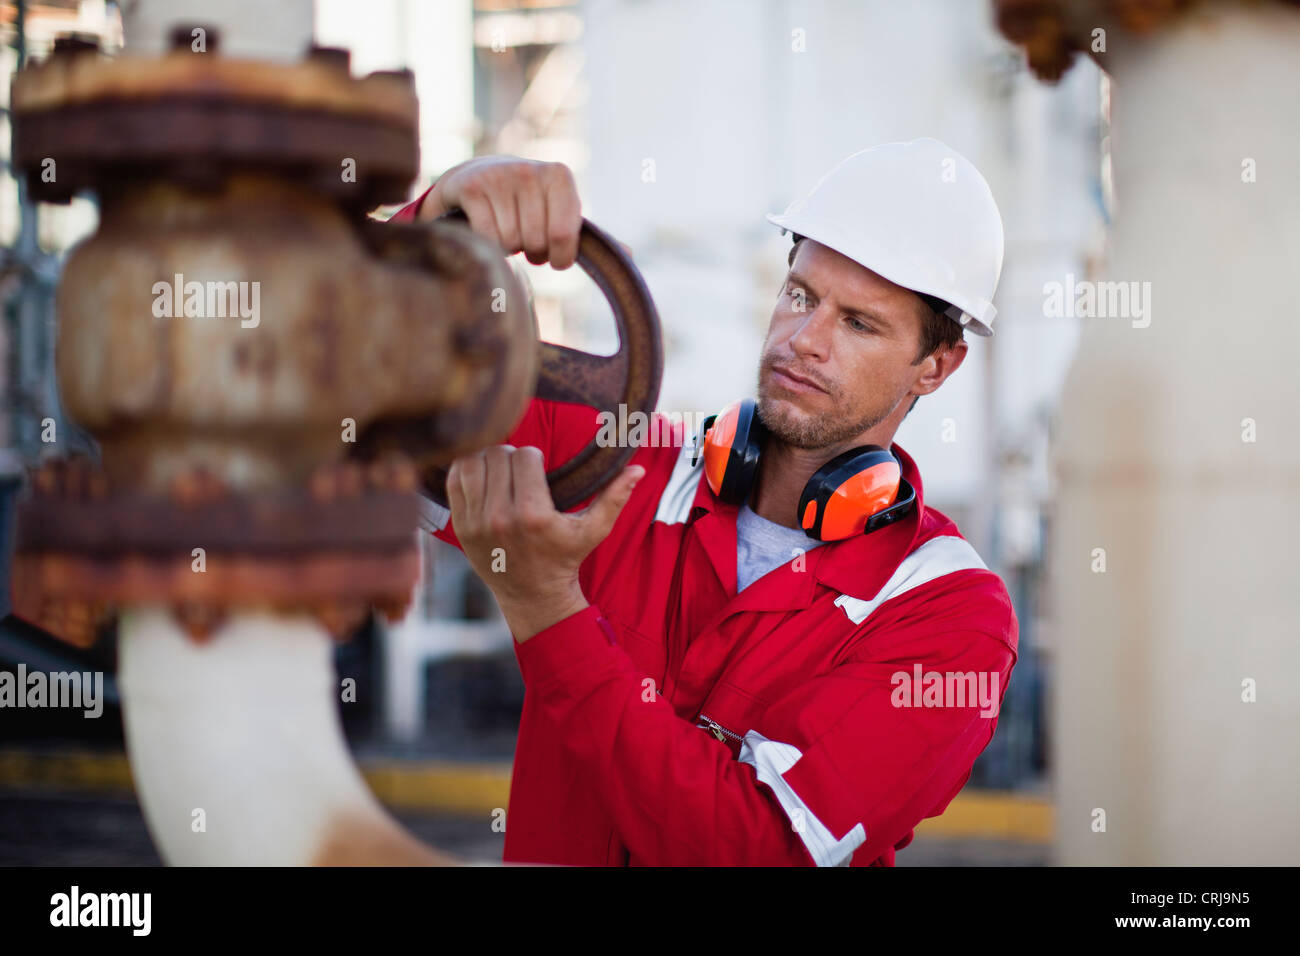 Worker adjusting gauge at chemical plant - Stock Image